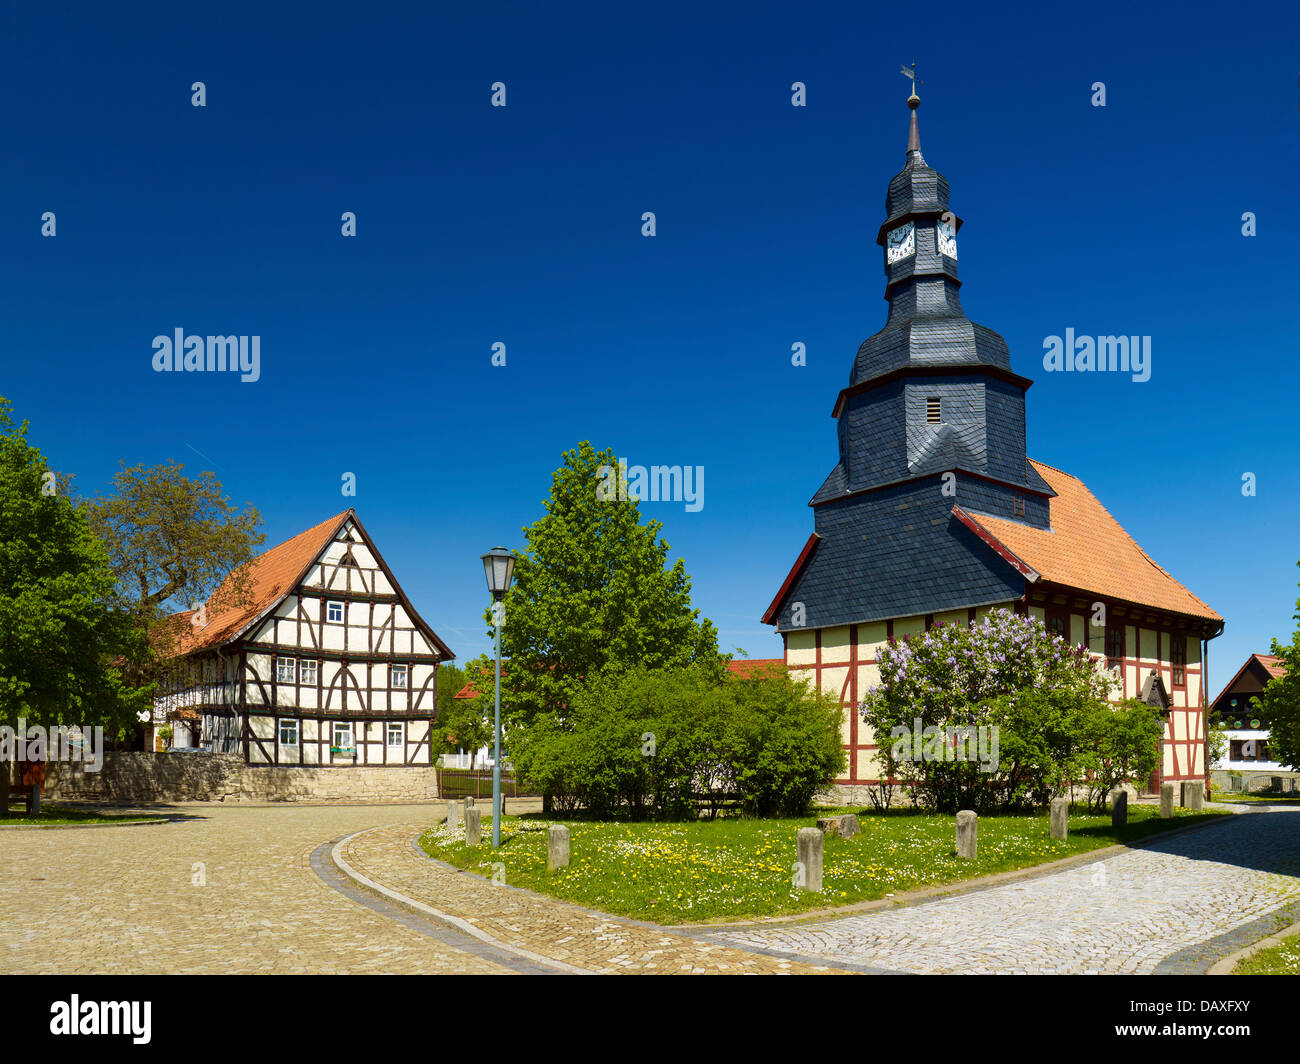 St. Trinity Church Hauröden and half-timbered house, Eichsfeld District, Thuringia, Germany - Stock Image